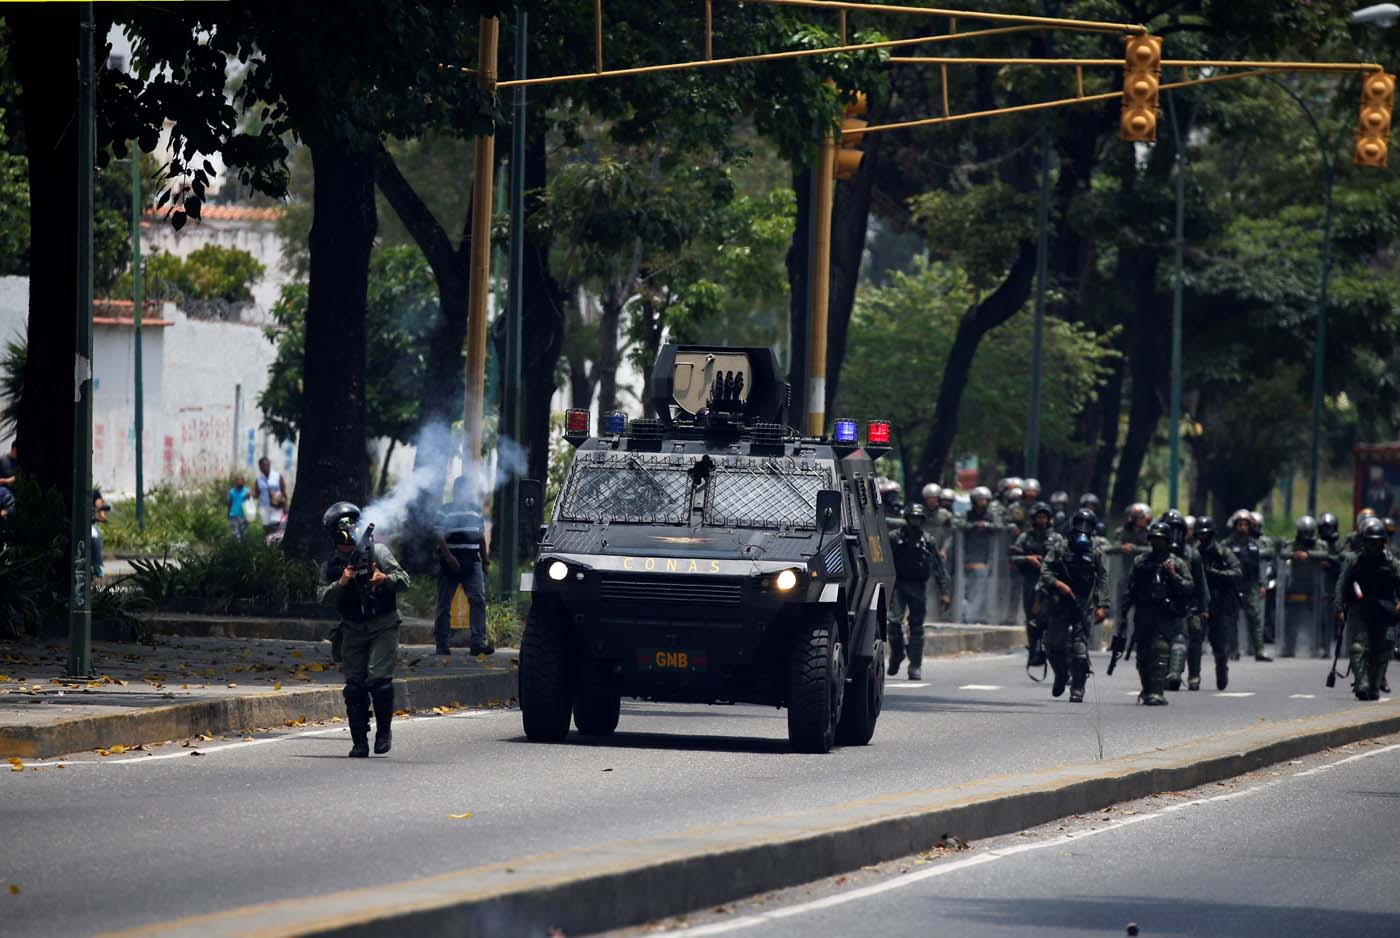 Riot police take positions as demonstrators rally against Venezuela's President Nicolas Maduro in Caracas, Venezuela, April 20, 2017. REUTERS/Carlos Garcia Rawlins